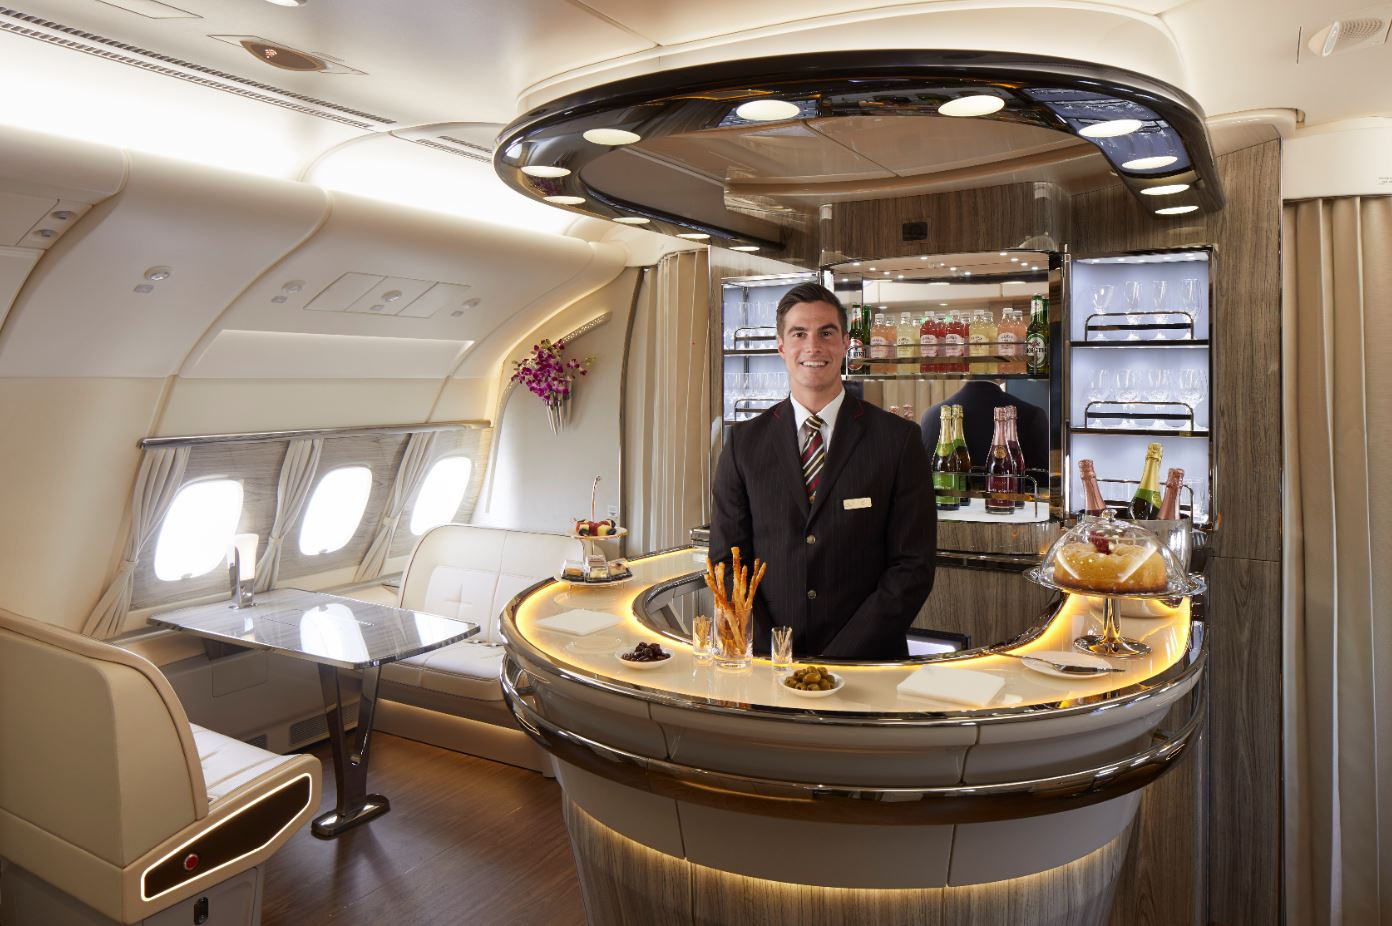 Emirates onboard bar. How Emirates is taking its A380 luxury to new heights